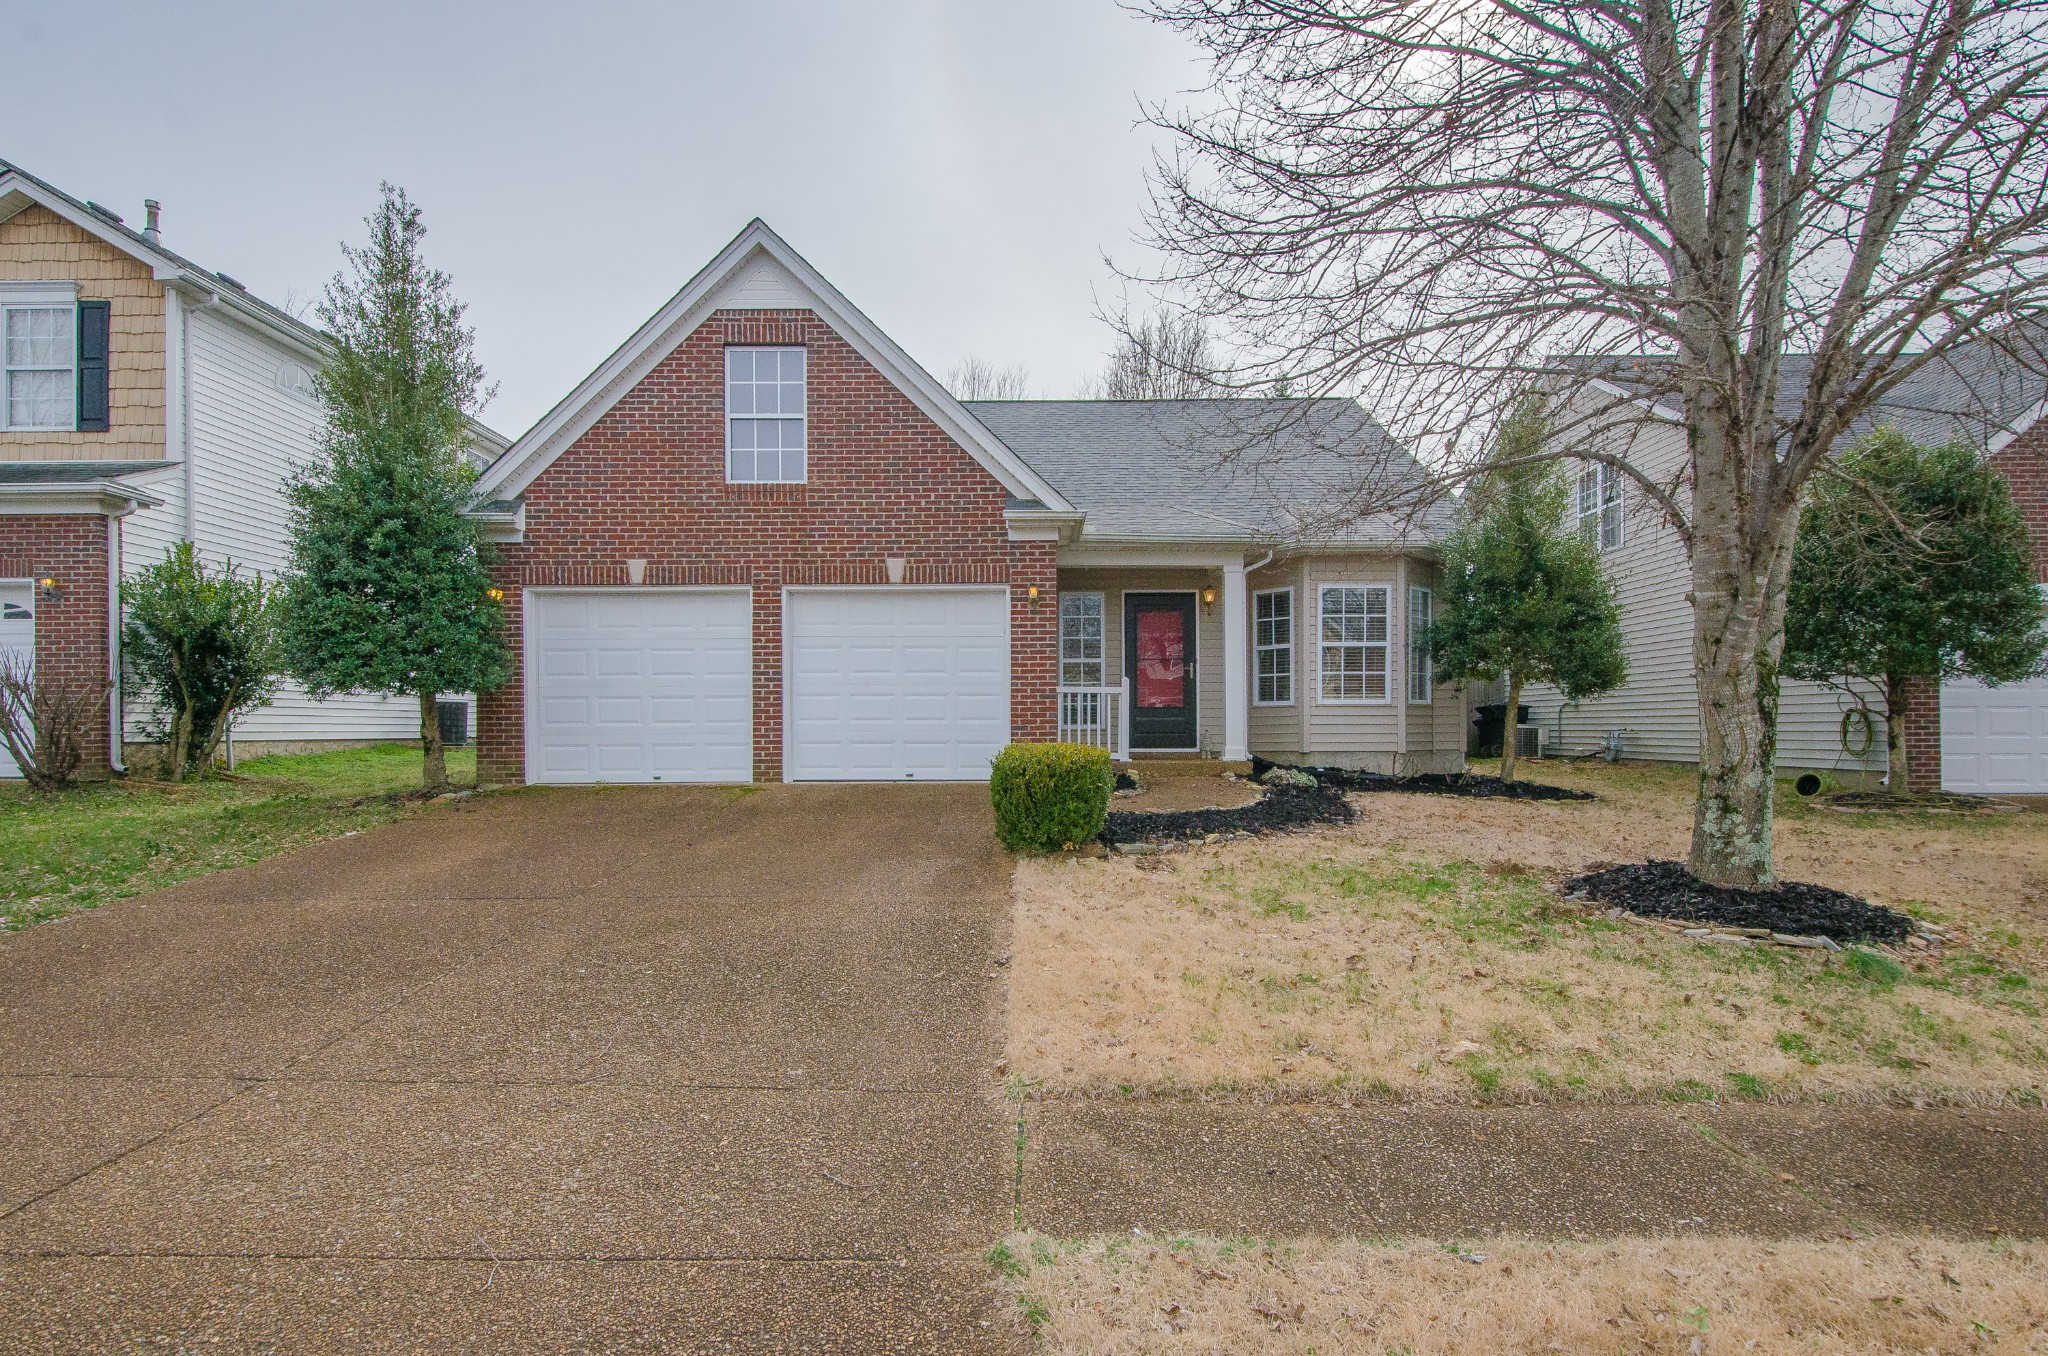 OPEN HOUSE Sunday February 2nd, 2-4pm!!  GREAT HOME in the high demand Franklin Green community!!! 3 Bedroom / 2 Full Baths / Private Fenced Back Yard /  2 Car Garage plus extra storage, walk-in attic / Community Pool / Beautiful Common Areas / Playgrounds / Walking Trails throughout the surrounding woods. OWNER / AGENT